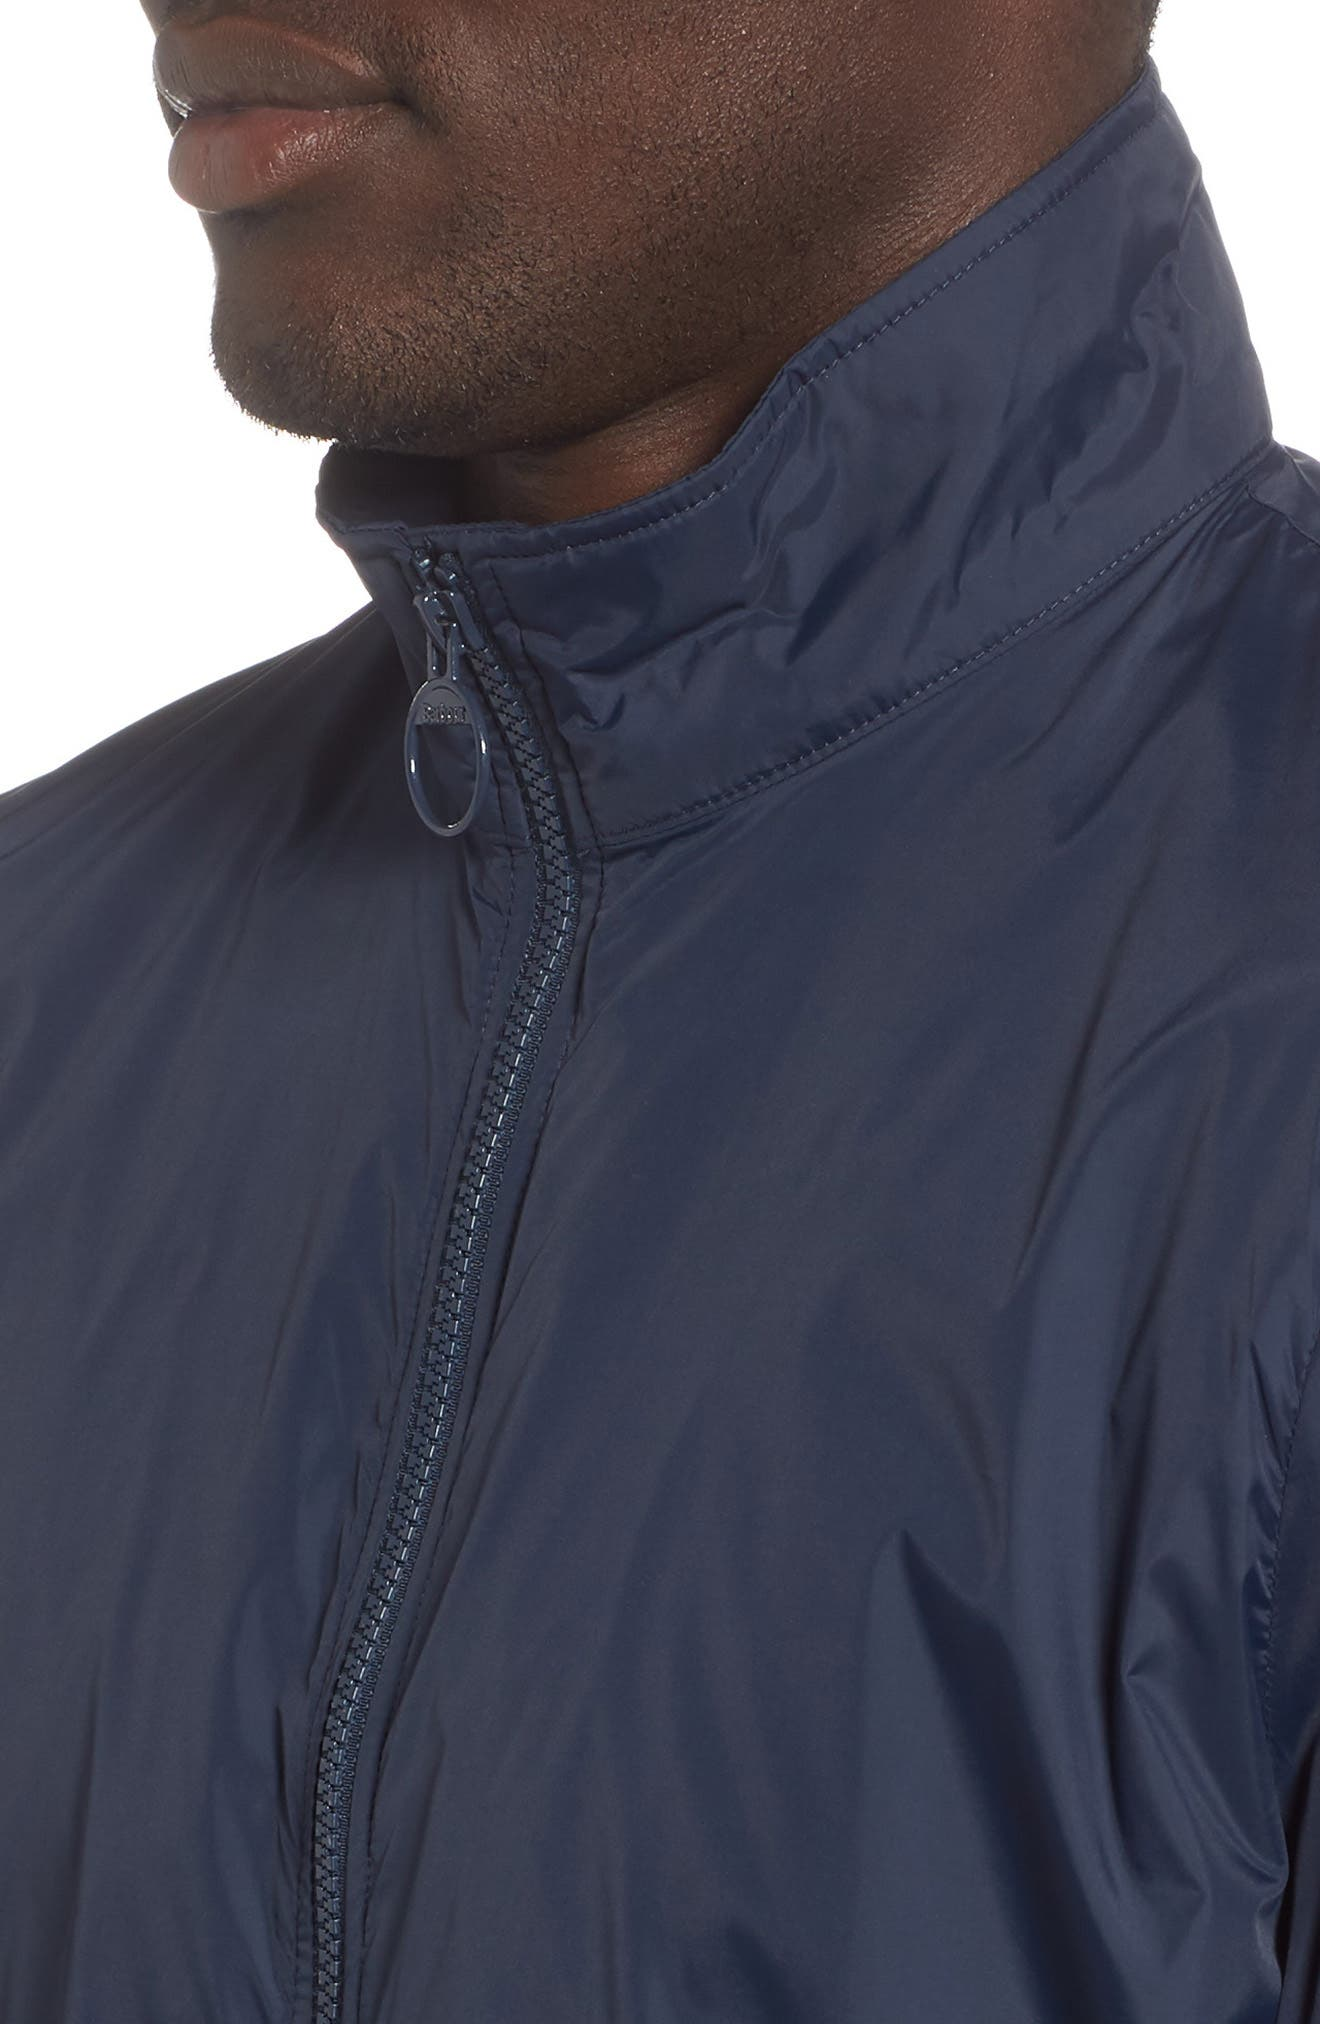 Bollen Jacket,                             Alternate thumbnail 4, color,                             410